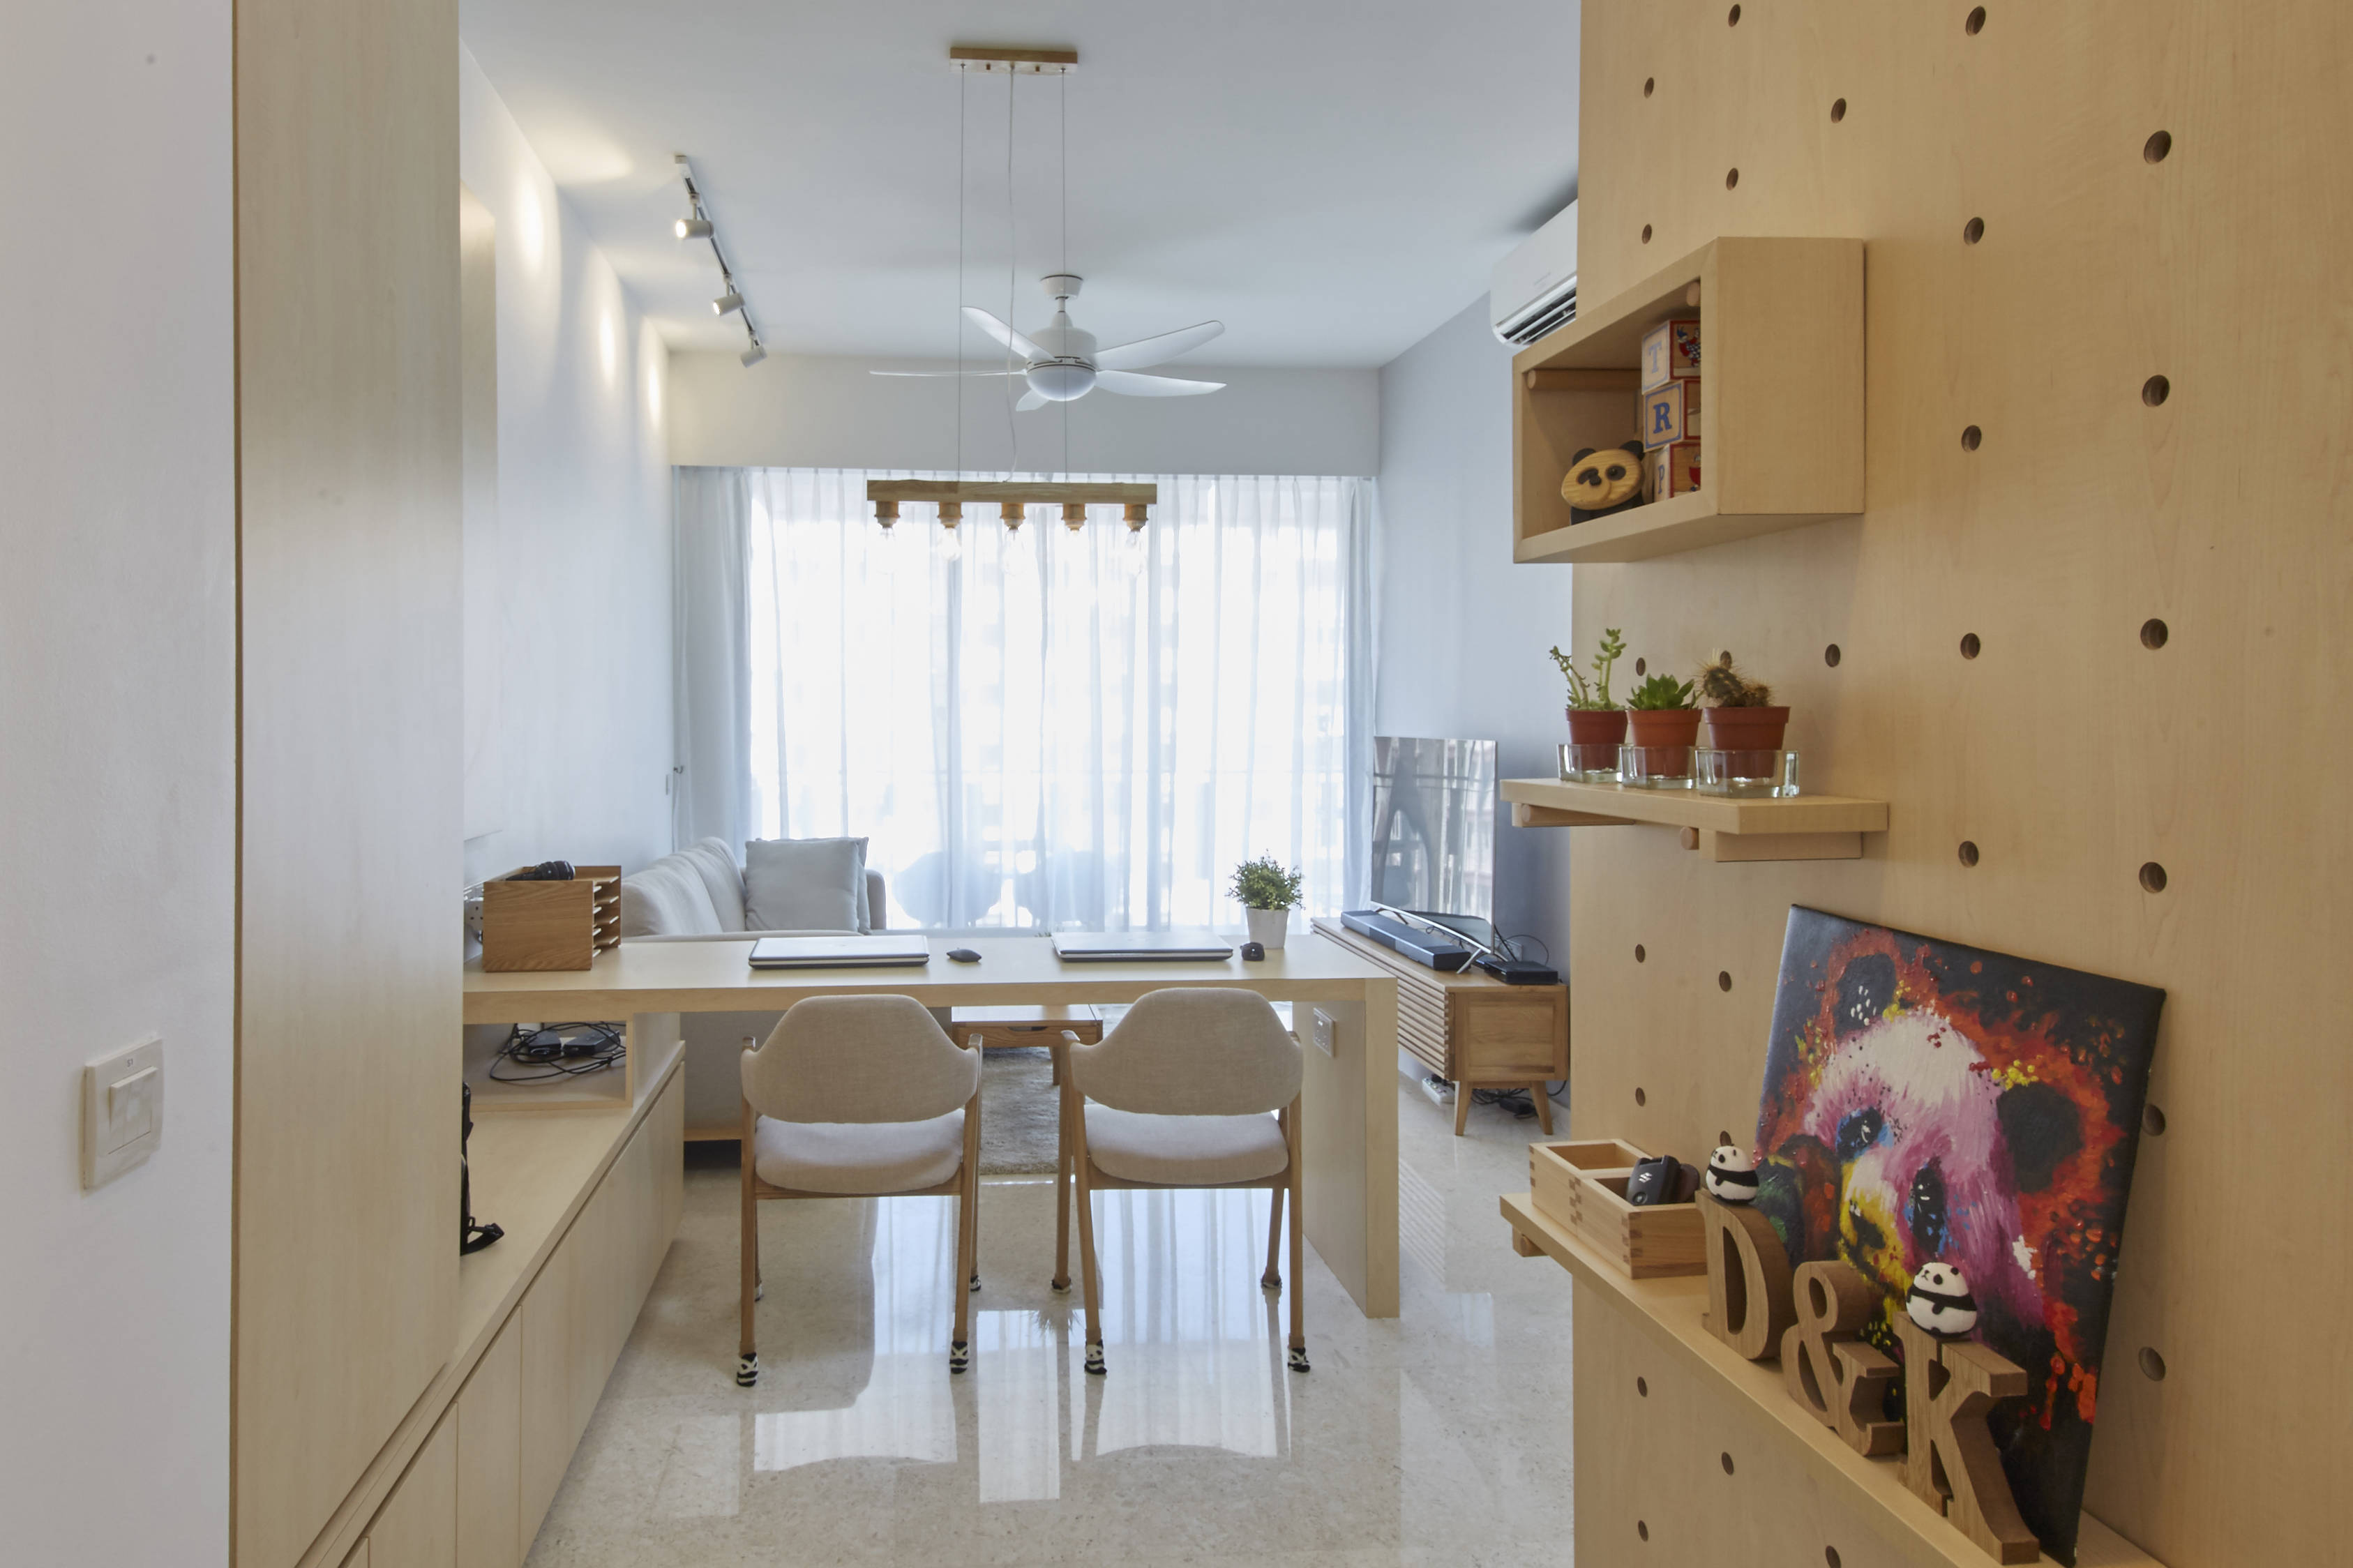 & A simple design and restful feel in this 3-bedroom condo | Lookboxliving